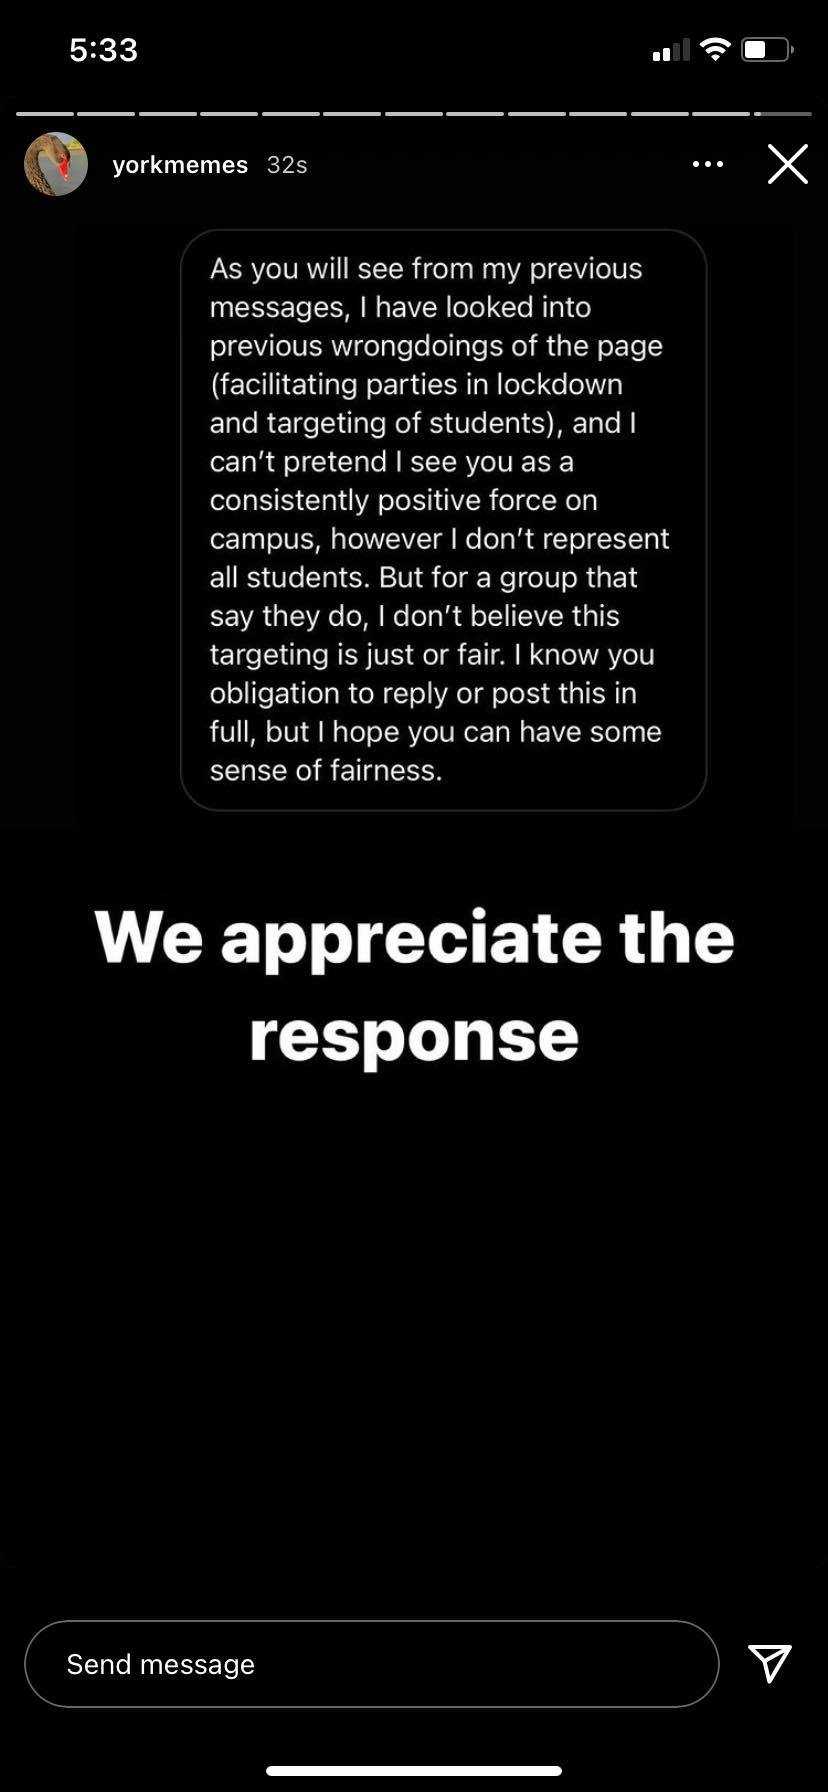 """A screenshot of an Instagram story by @yorkmemes featuring direct messages from an anonymous sender reading: """"As you will see from my previous messages, I have looked into previous wrongdoings of this page (facilitating parties in lockdown and targeting of students), and I can't pretend I see you as a consistently positive force on campus, however I don't represent all students. But for a group that say I do, I don't believe this targeting is just or fair. I know you obligation to reply or post this in full, but I hope you can have some sense of fairness."""" A caption below reads """"We appreciate the response."""""""